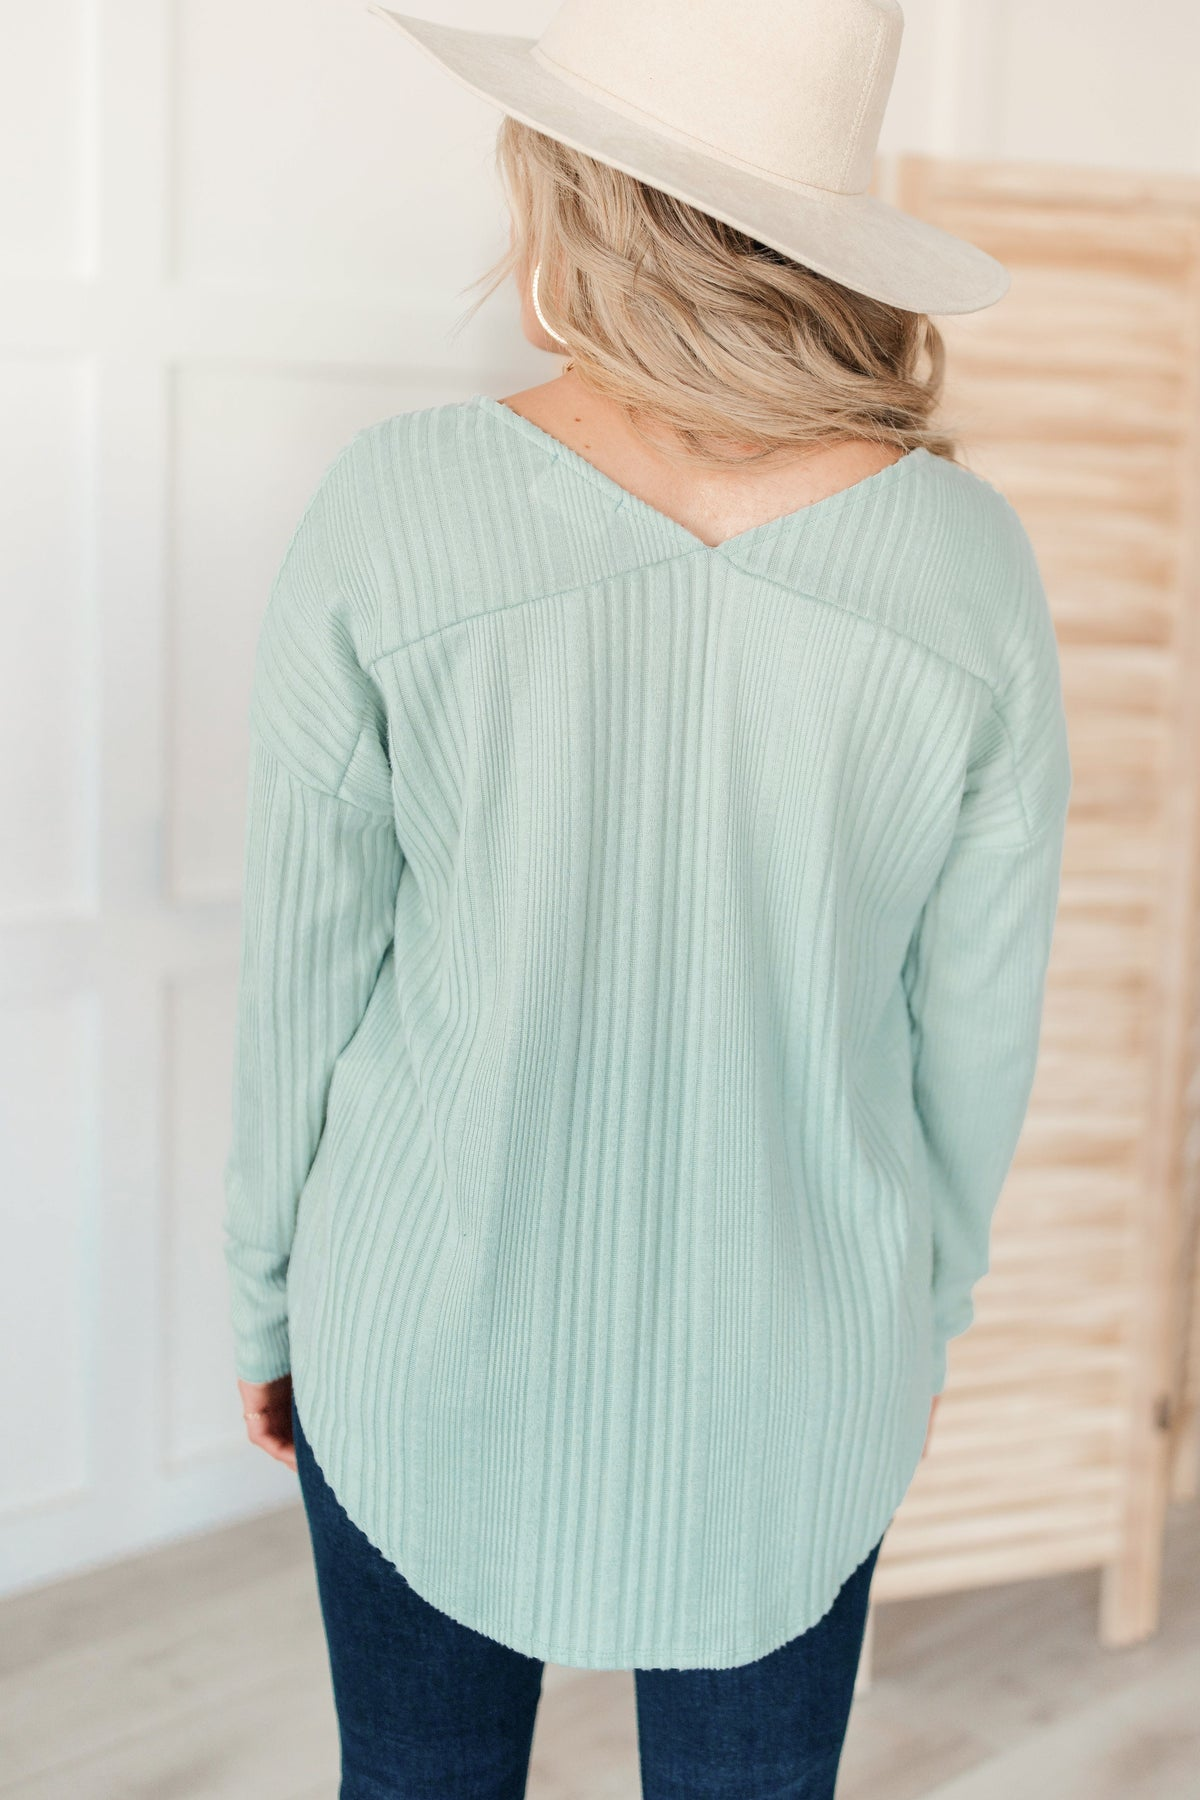 Amira Textured Top in Mint